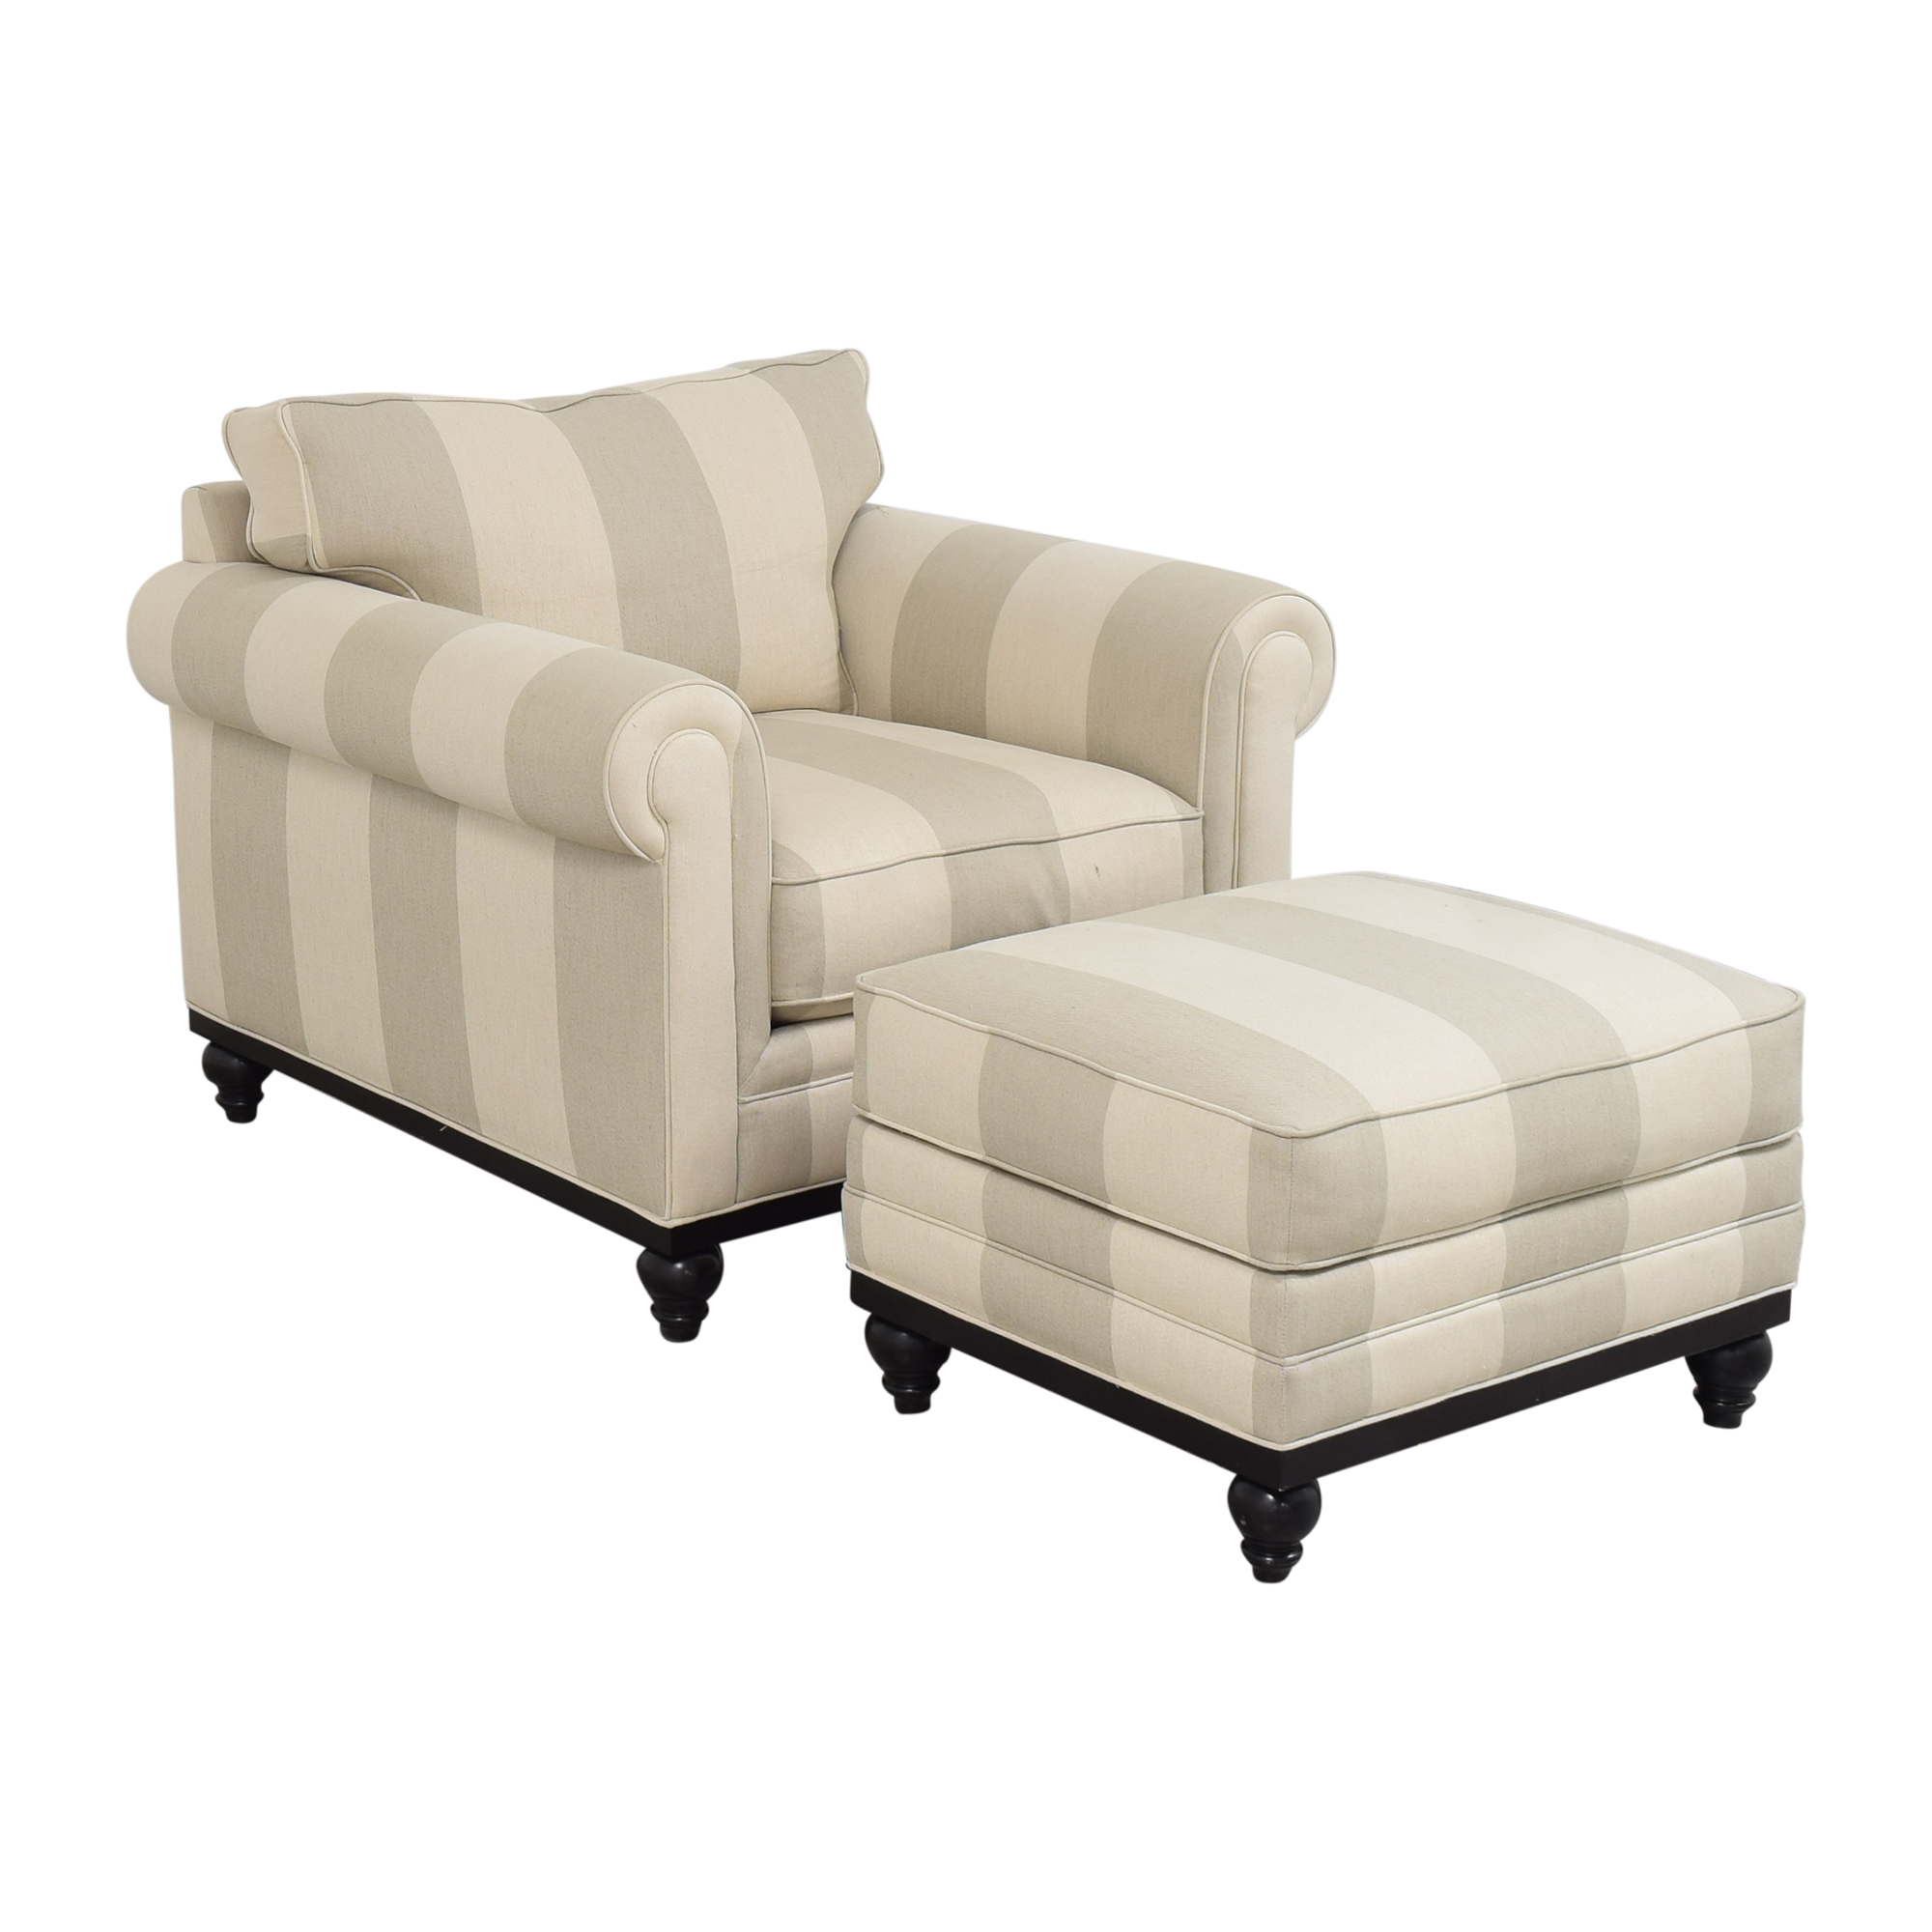 Macy's Macy's Martha Stewart Collection Stripe Club Chair and Ottoman second hand